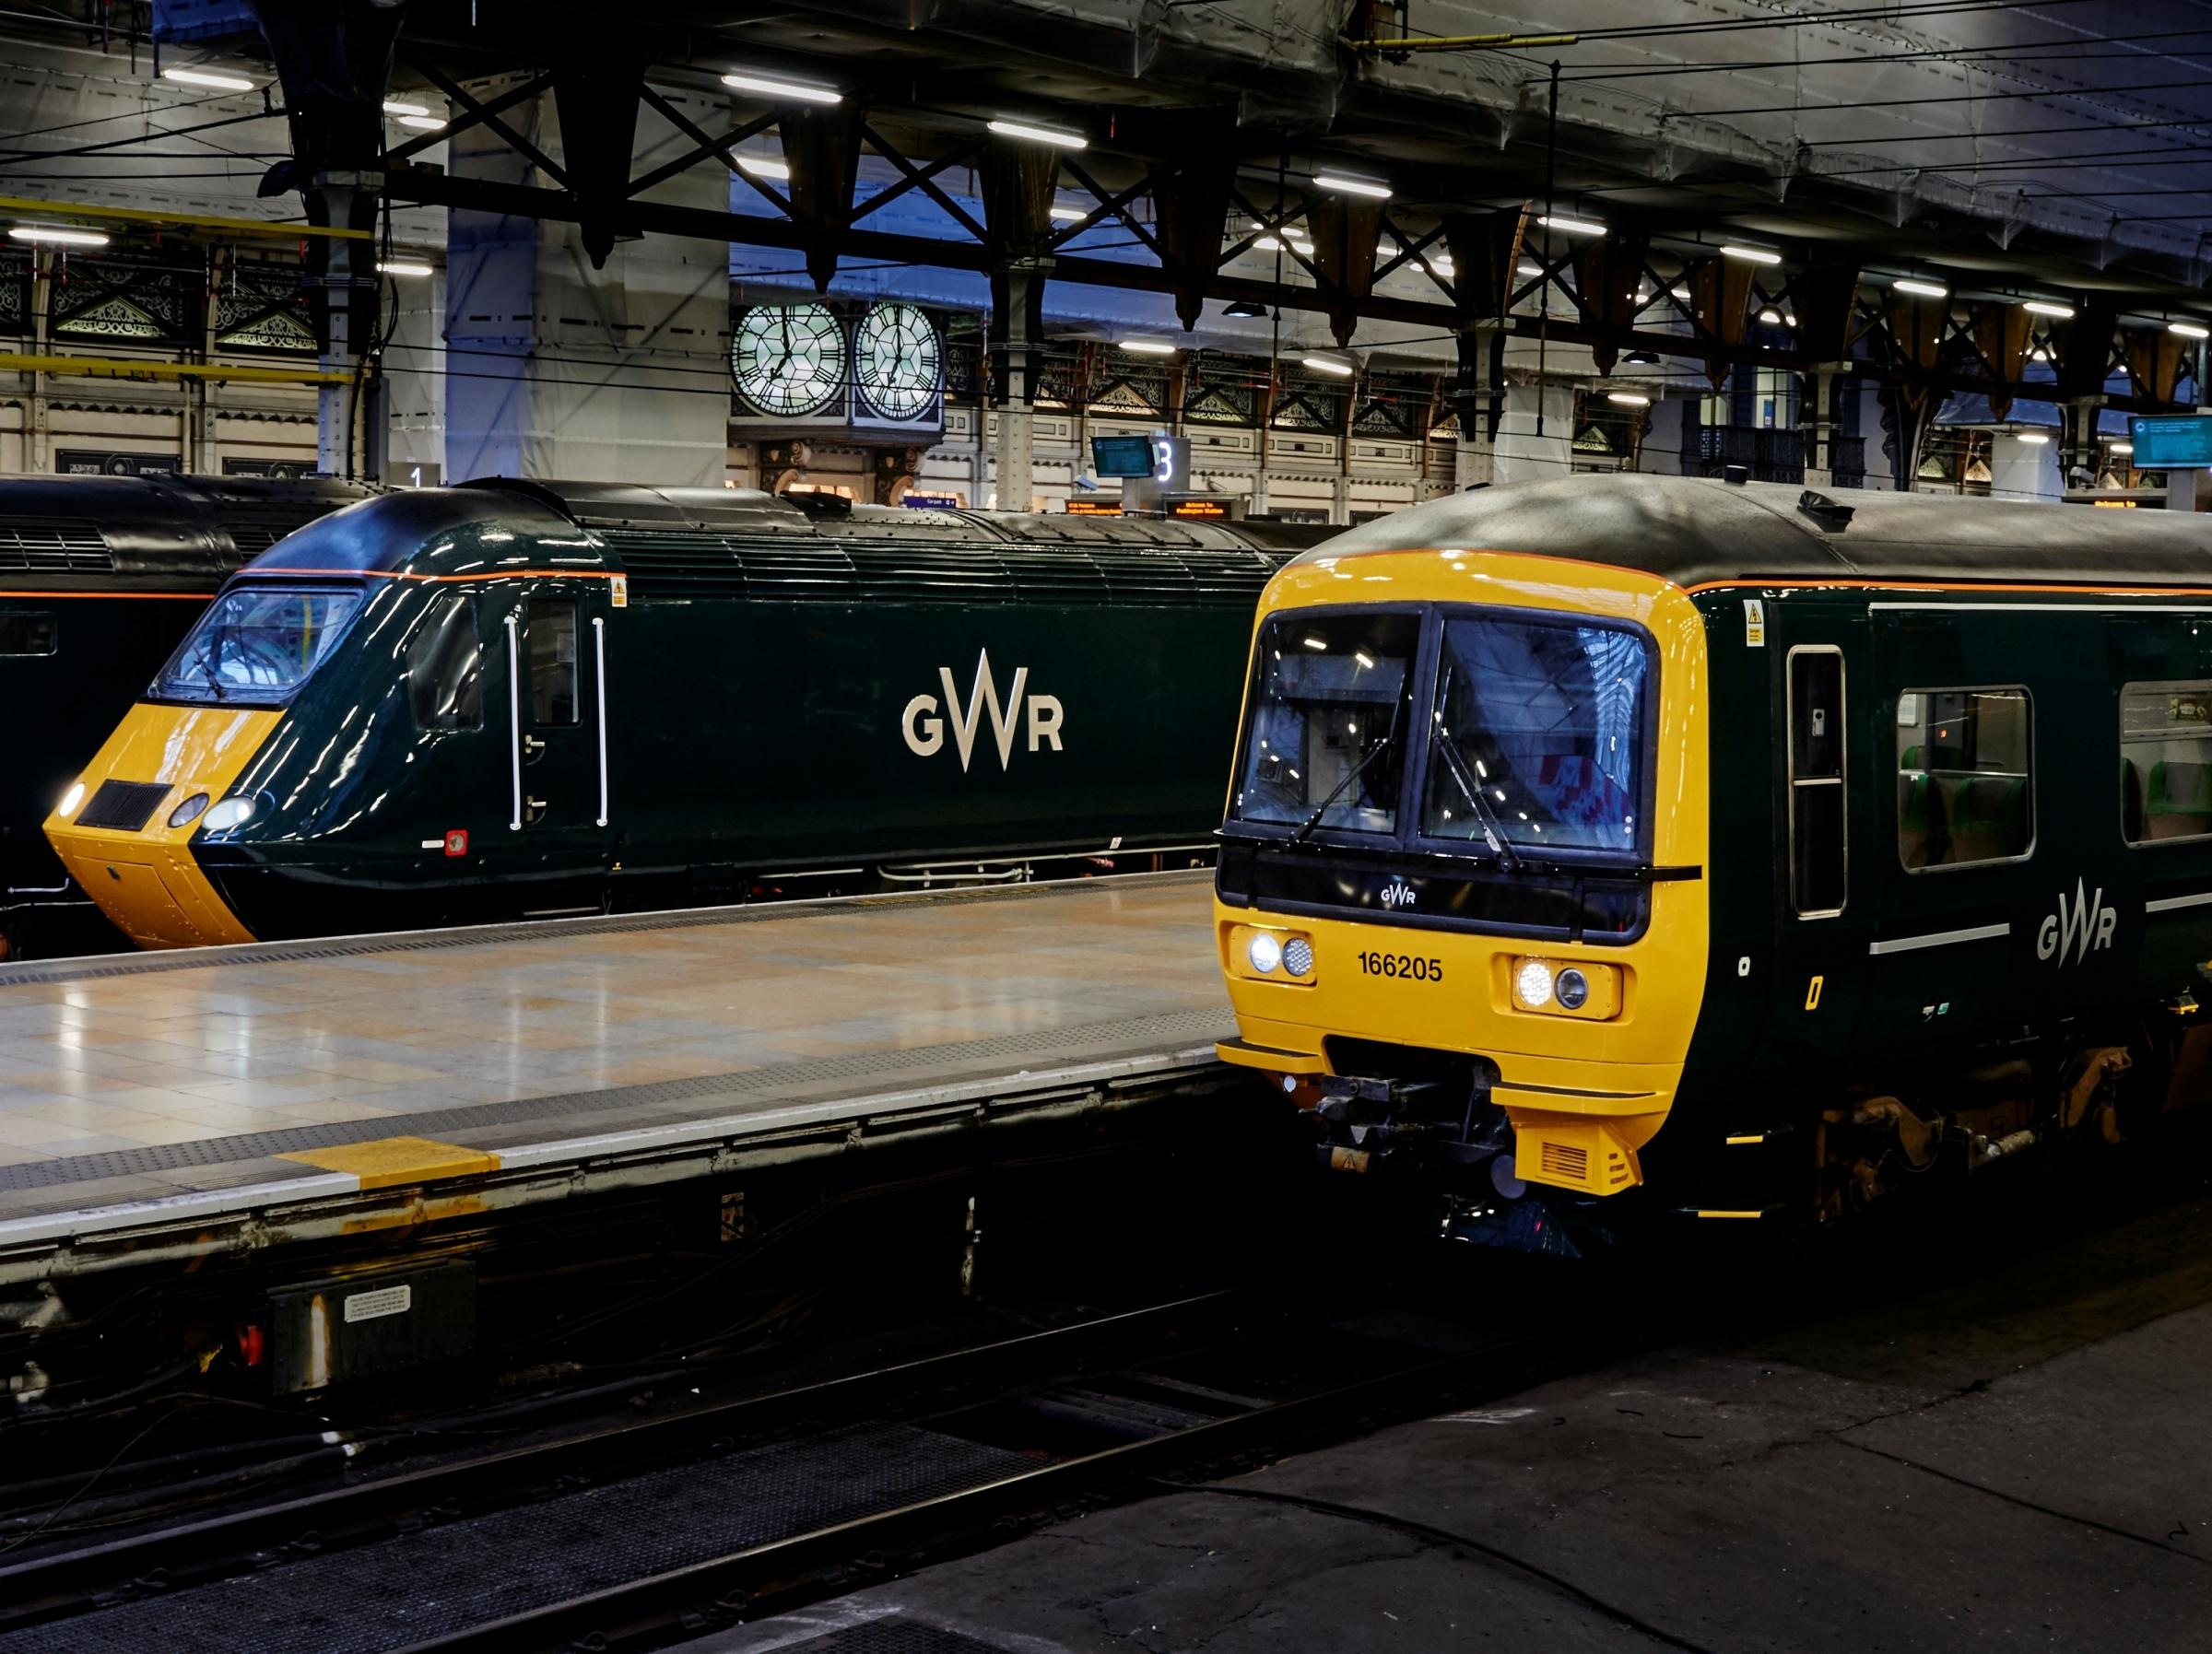 """GWR urged to improve services after """"unacceptable"""" levels of cancellations because of driver shortages"""